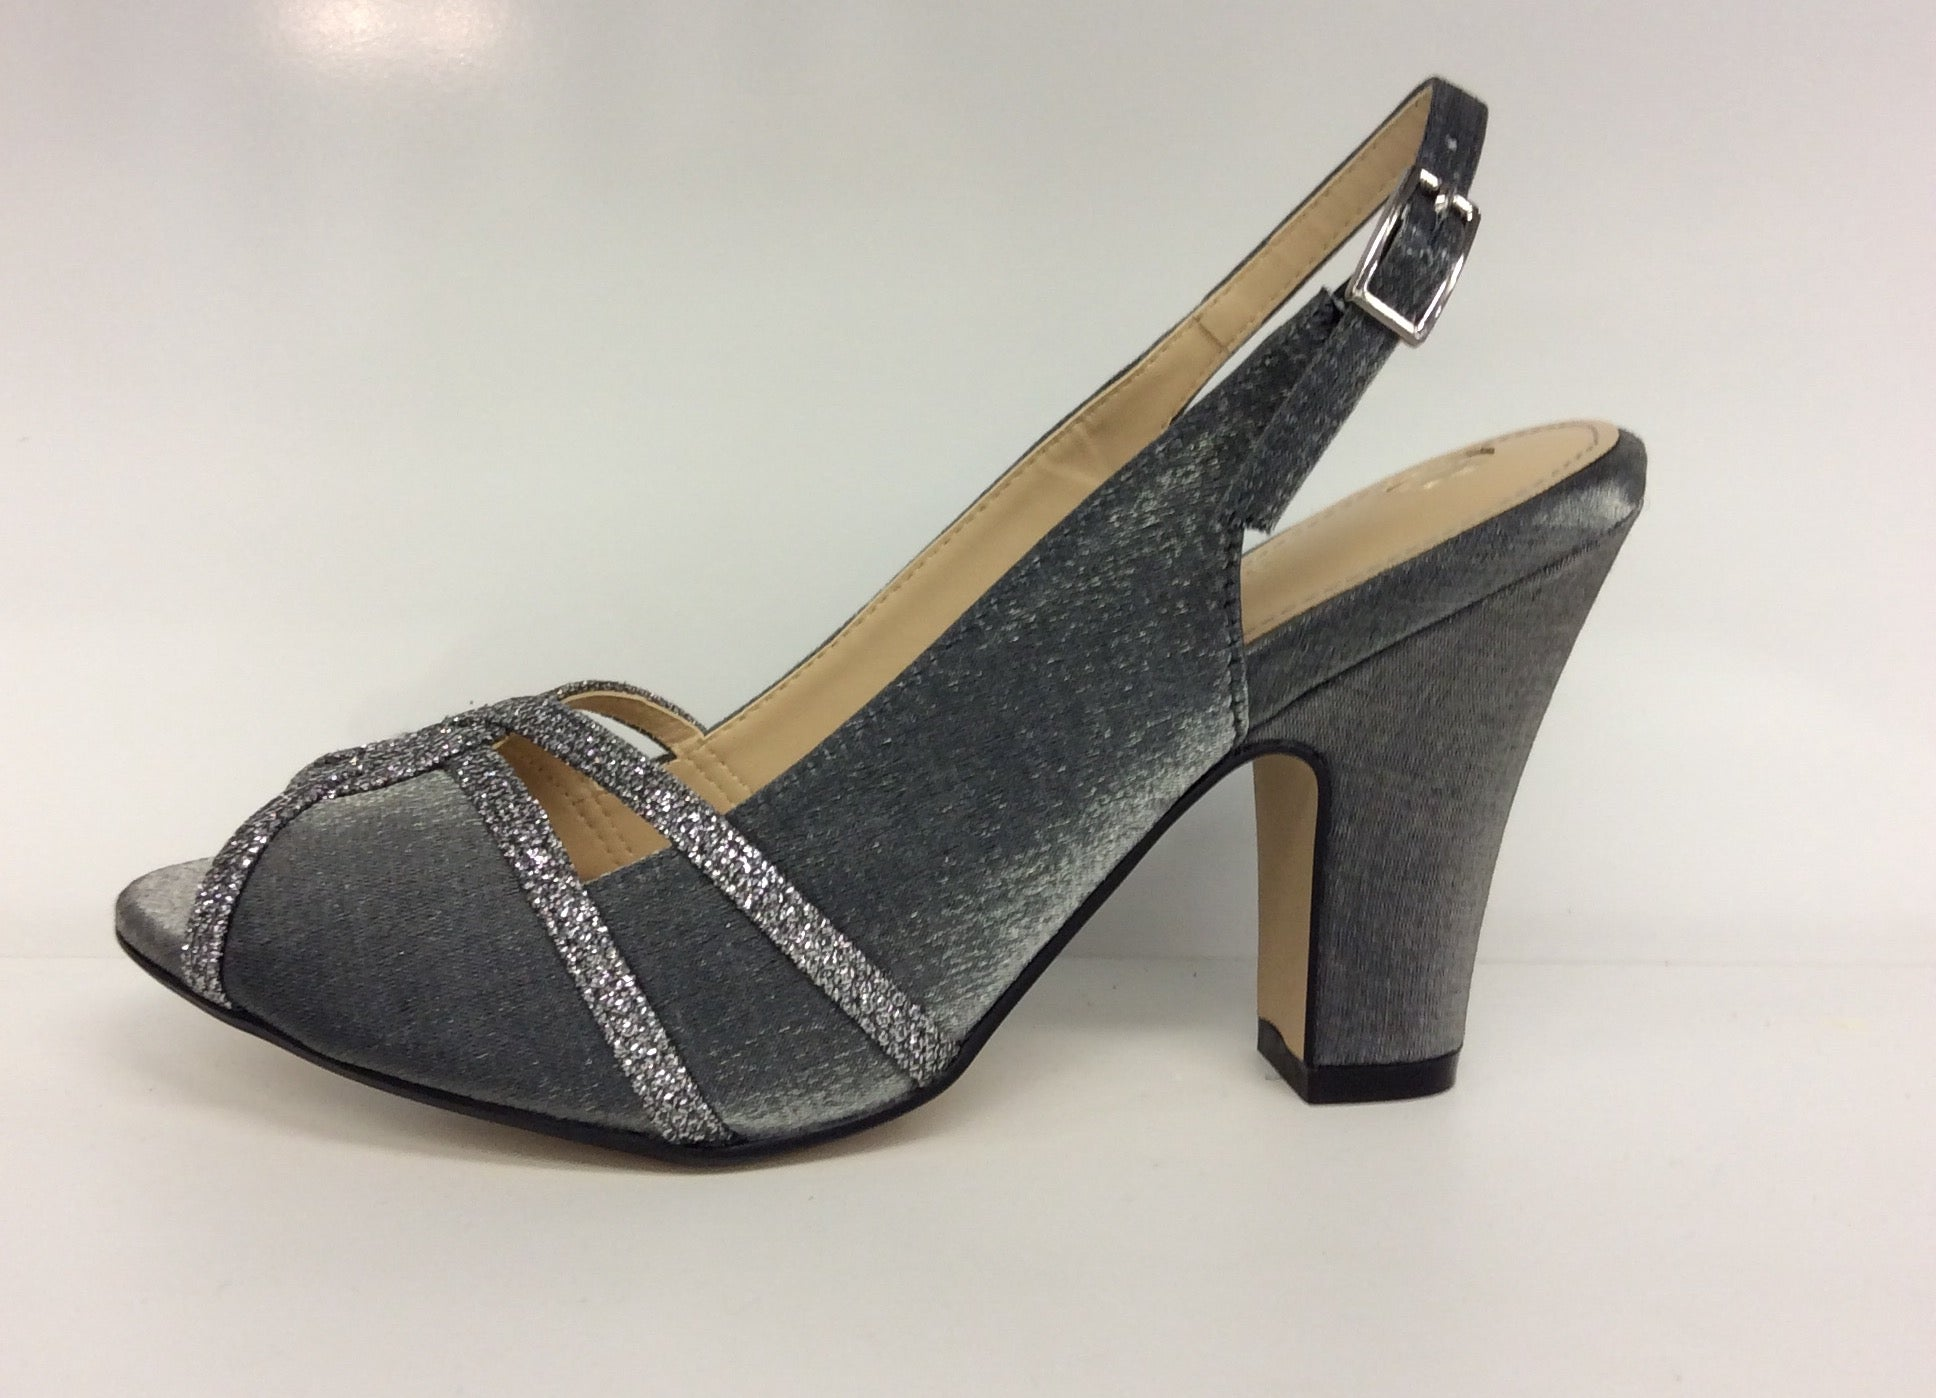 6558ad5a56a7 Clarice - Toby - Grey Glitter Satin Evening Shoe - Sole Sister Shoes